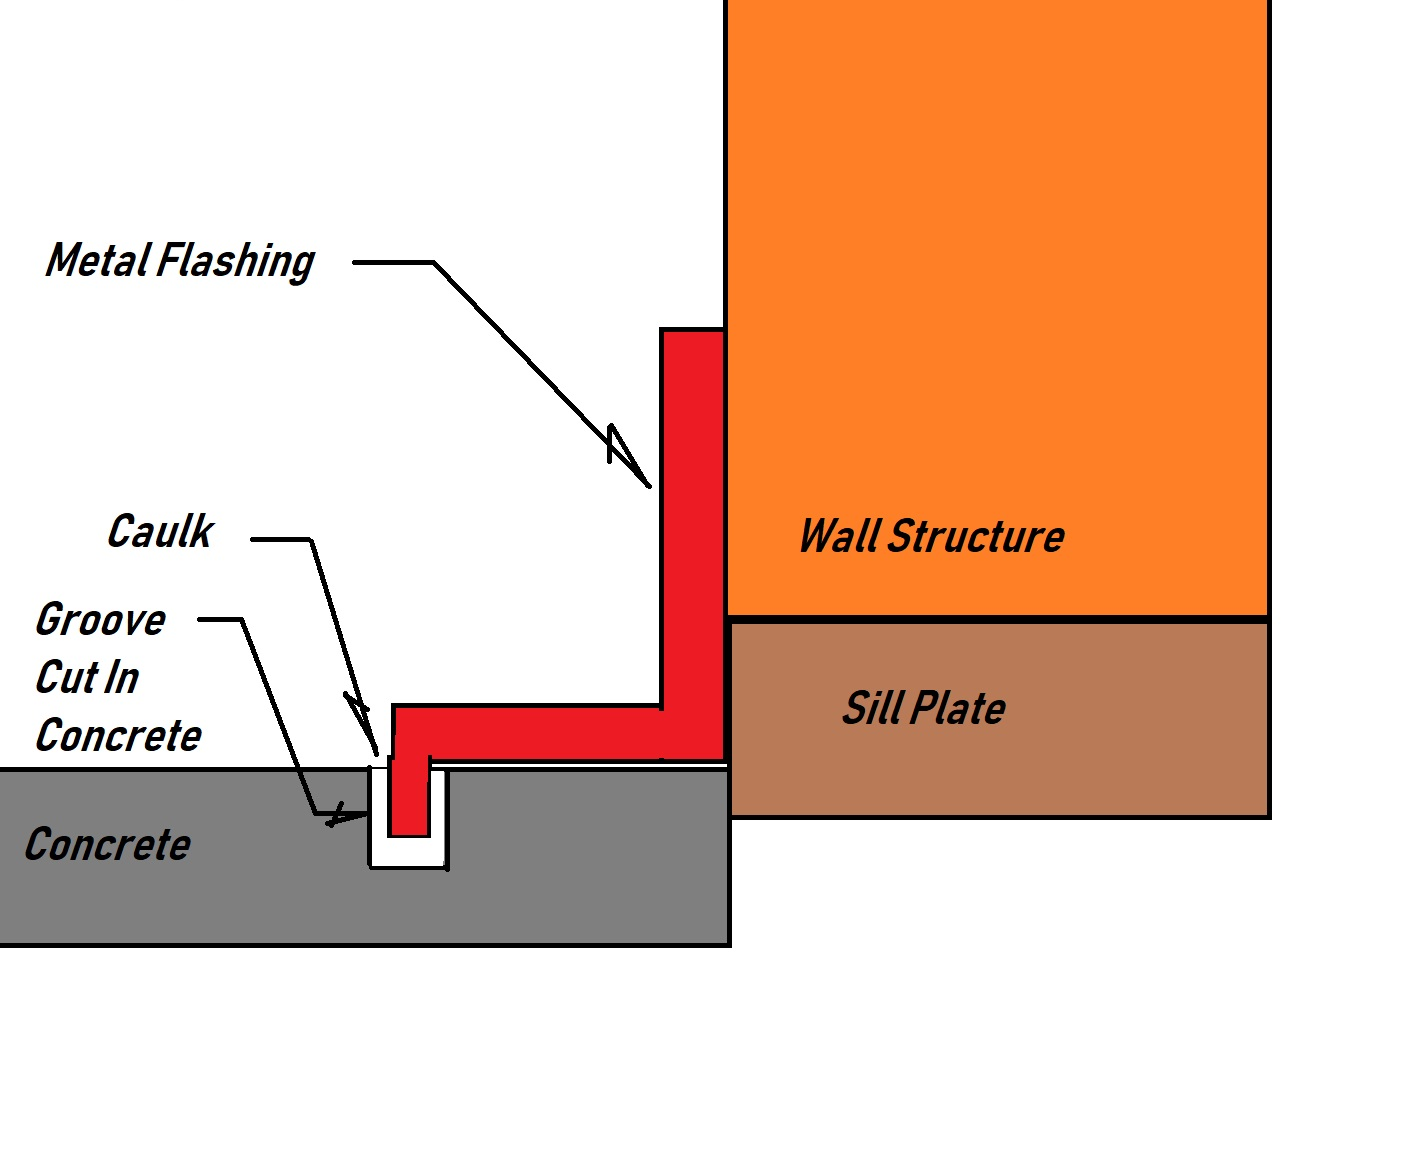 Concrete pour up to sill plate-concrete-edging.jpg